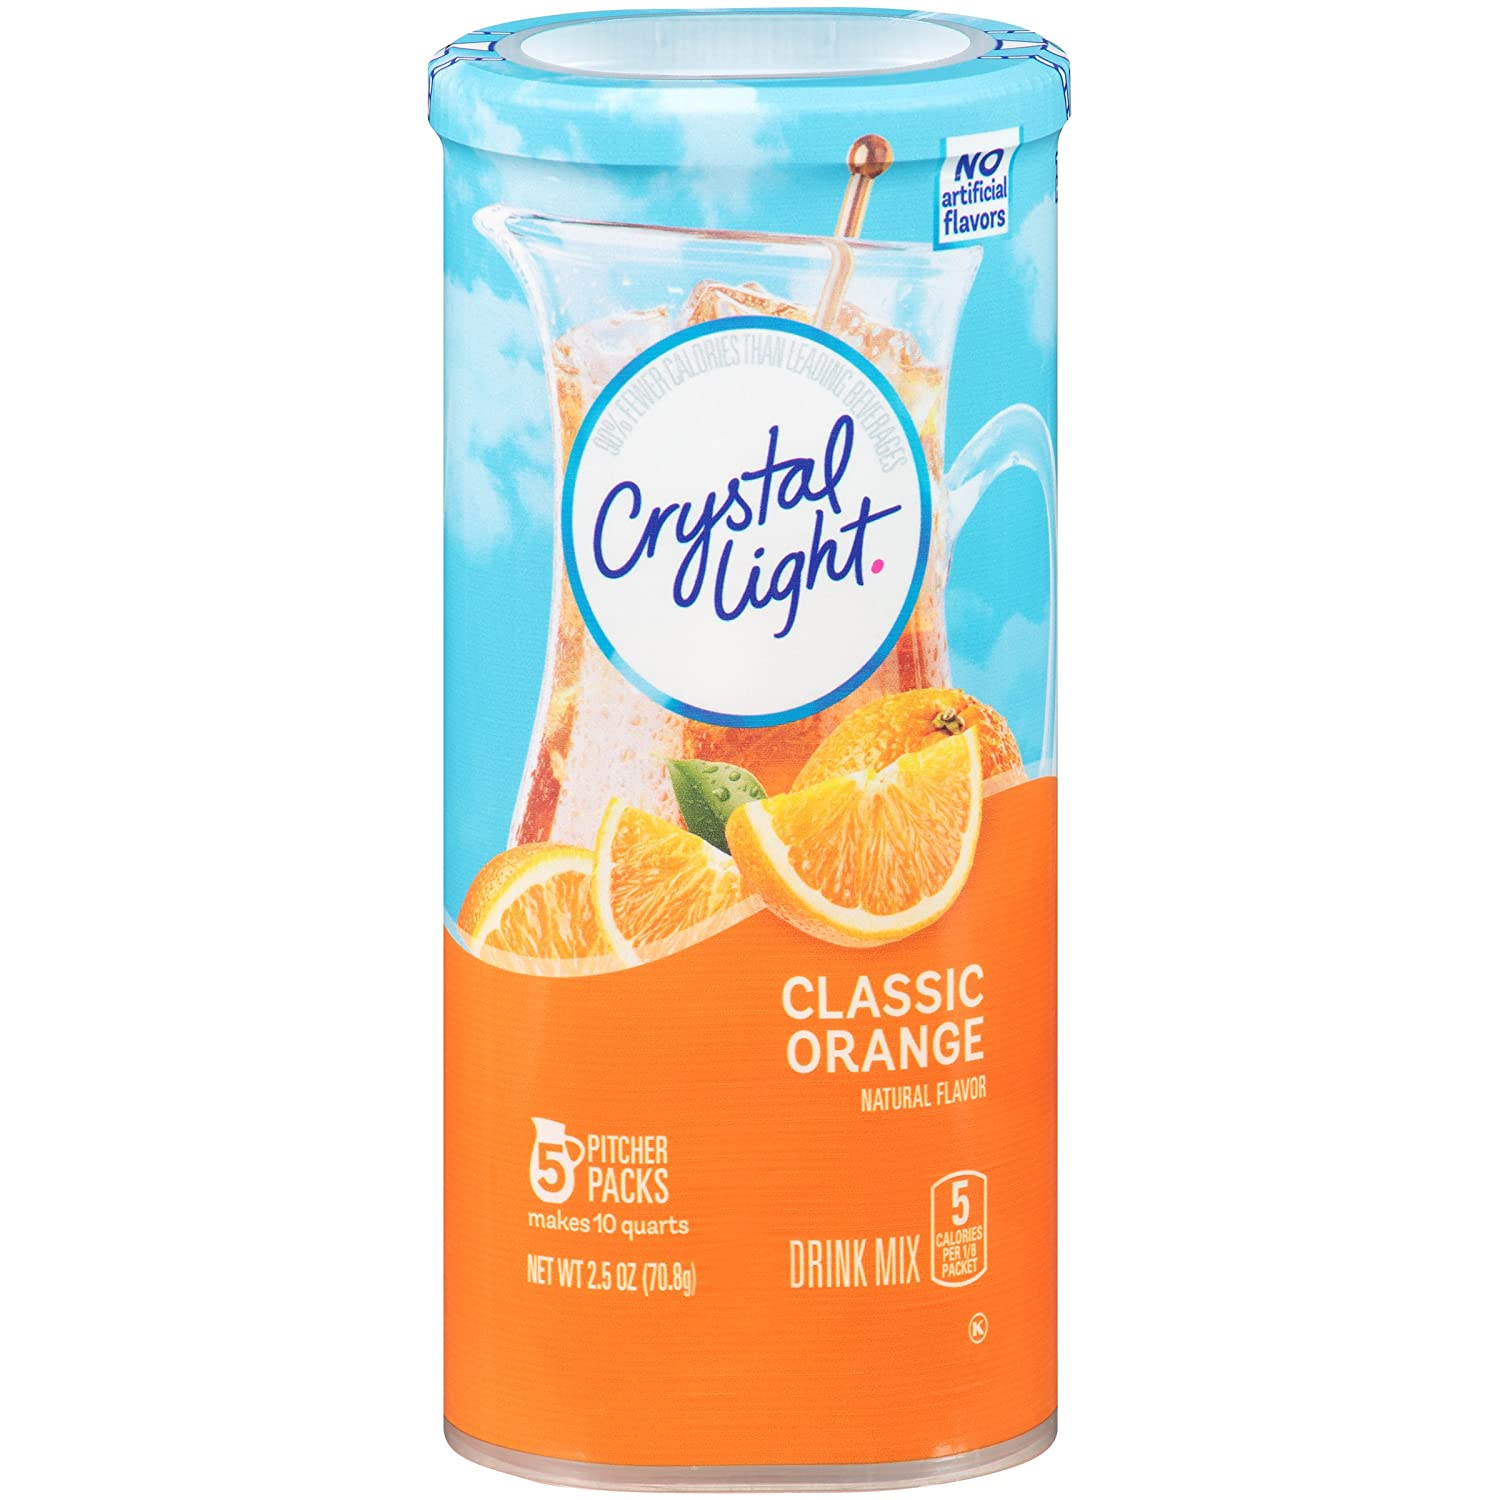 Crystal Light Drink Mix, Classic Orange With Vitamin C & Calcium, Pitcher Packets, 5 Count (Pack of 12 Canisters)